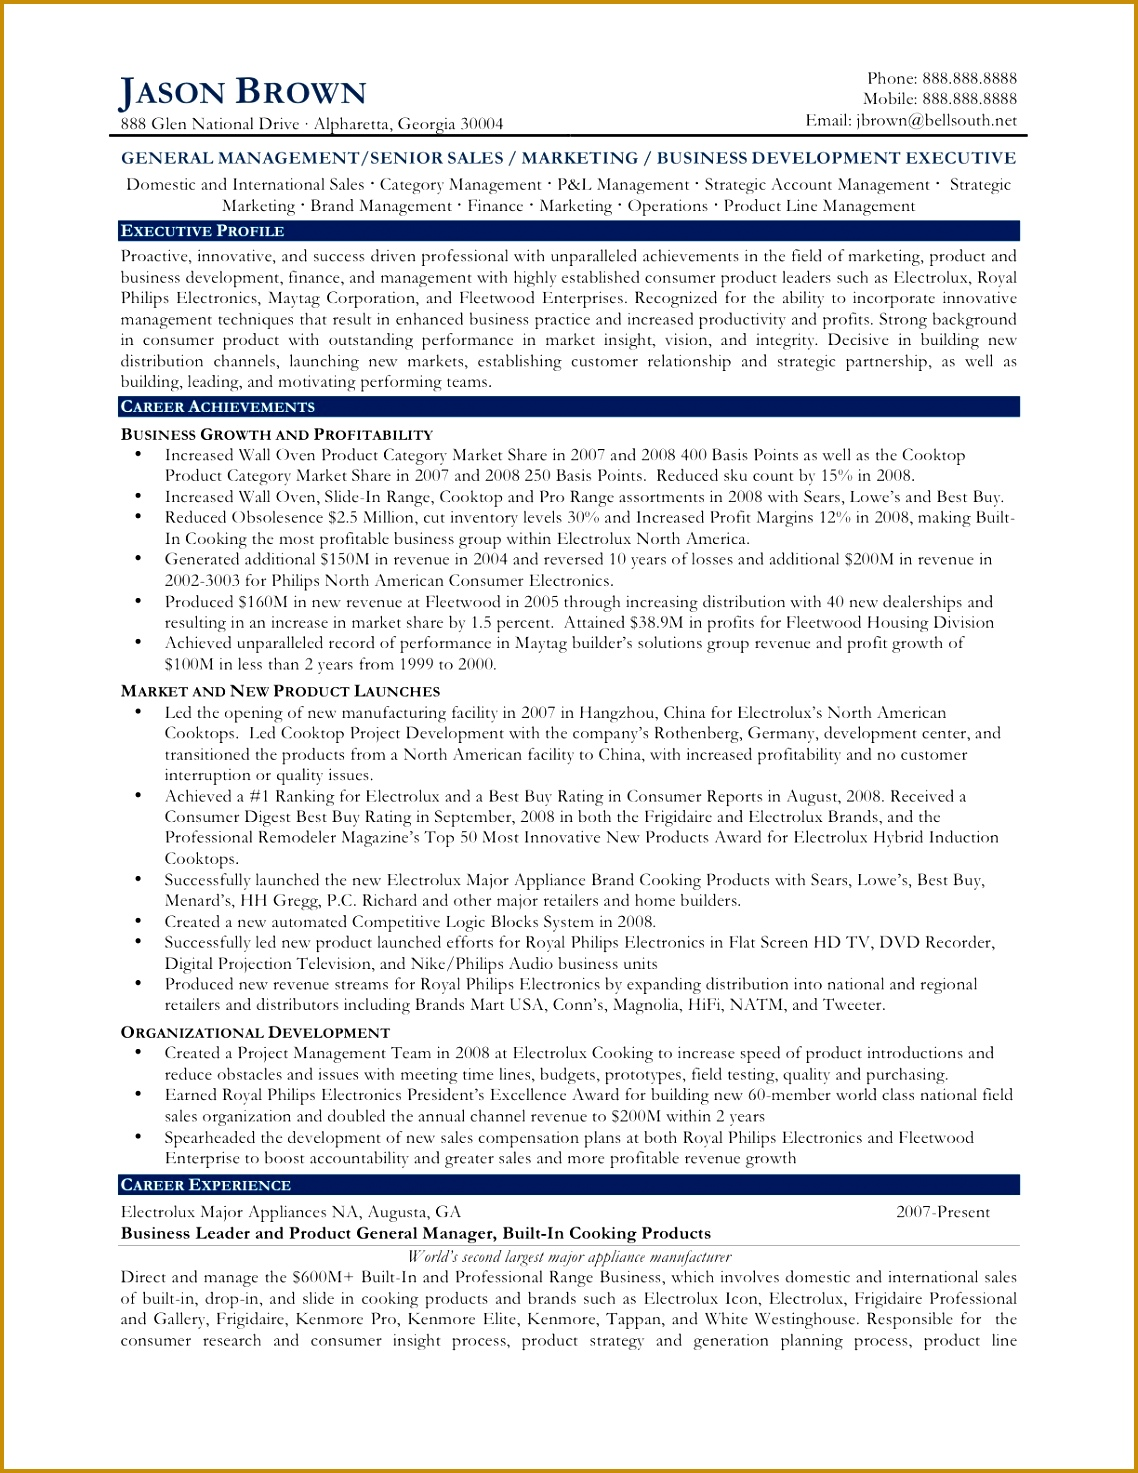 5 Sales and Marketing Manager Job Description Pdf | FabTemplatez